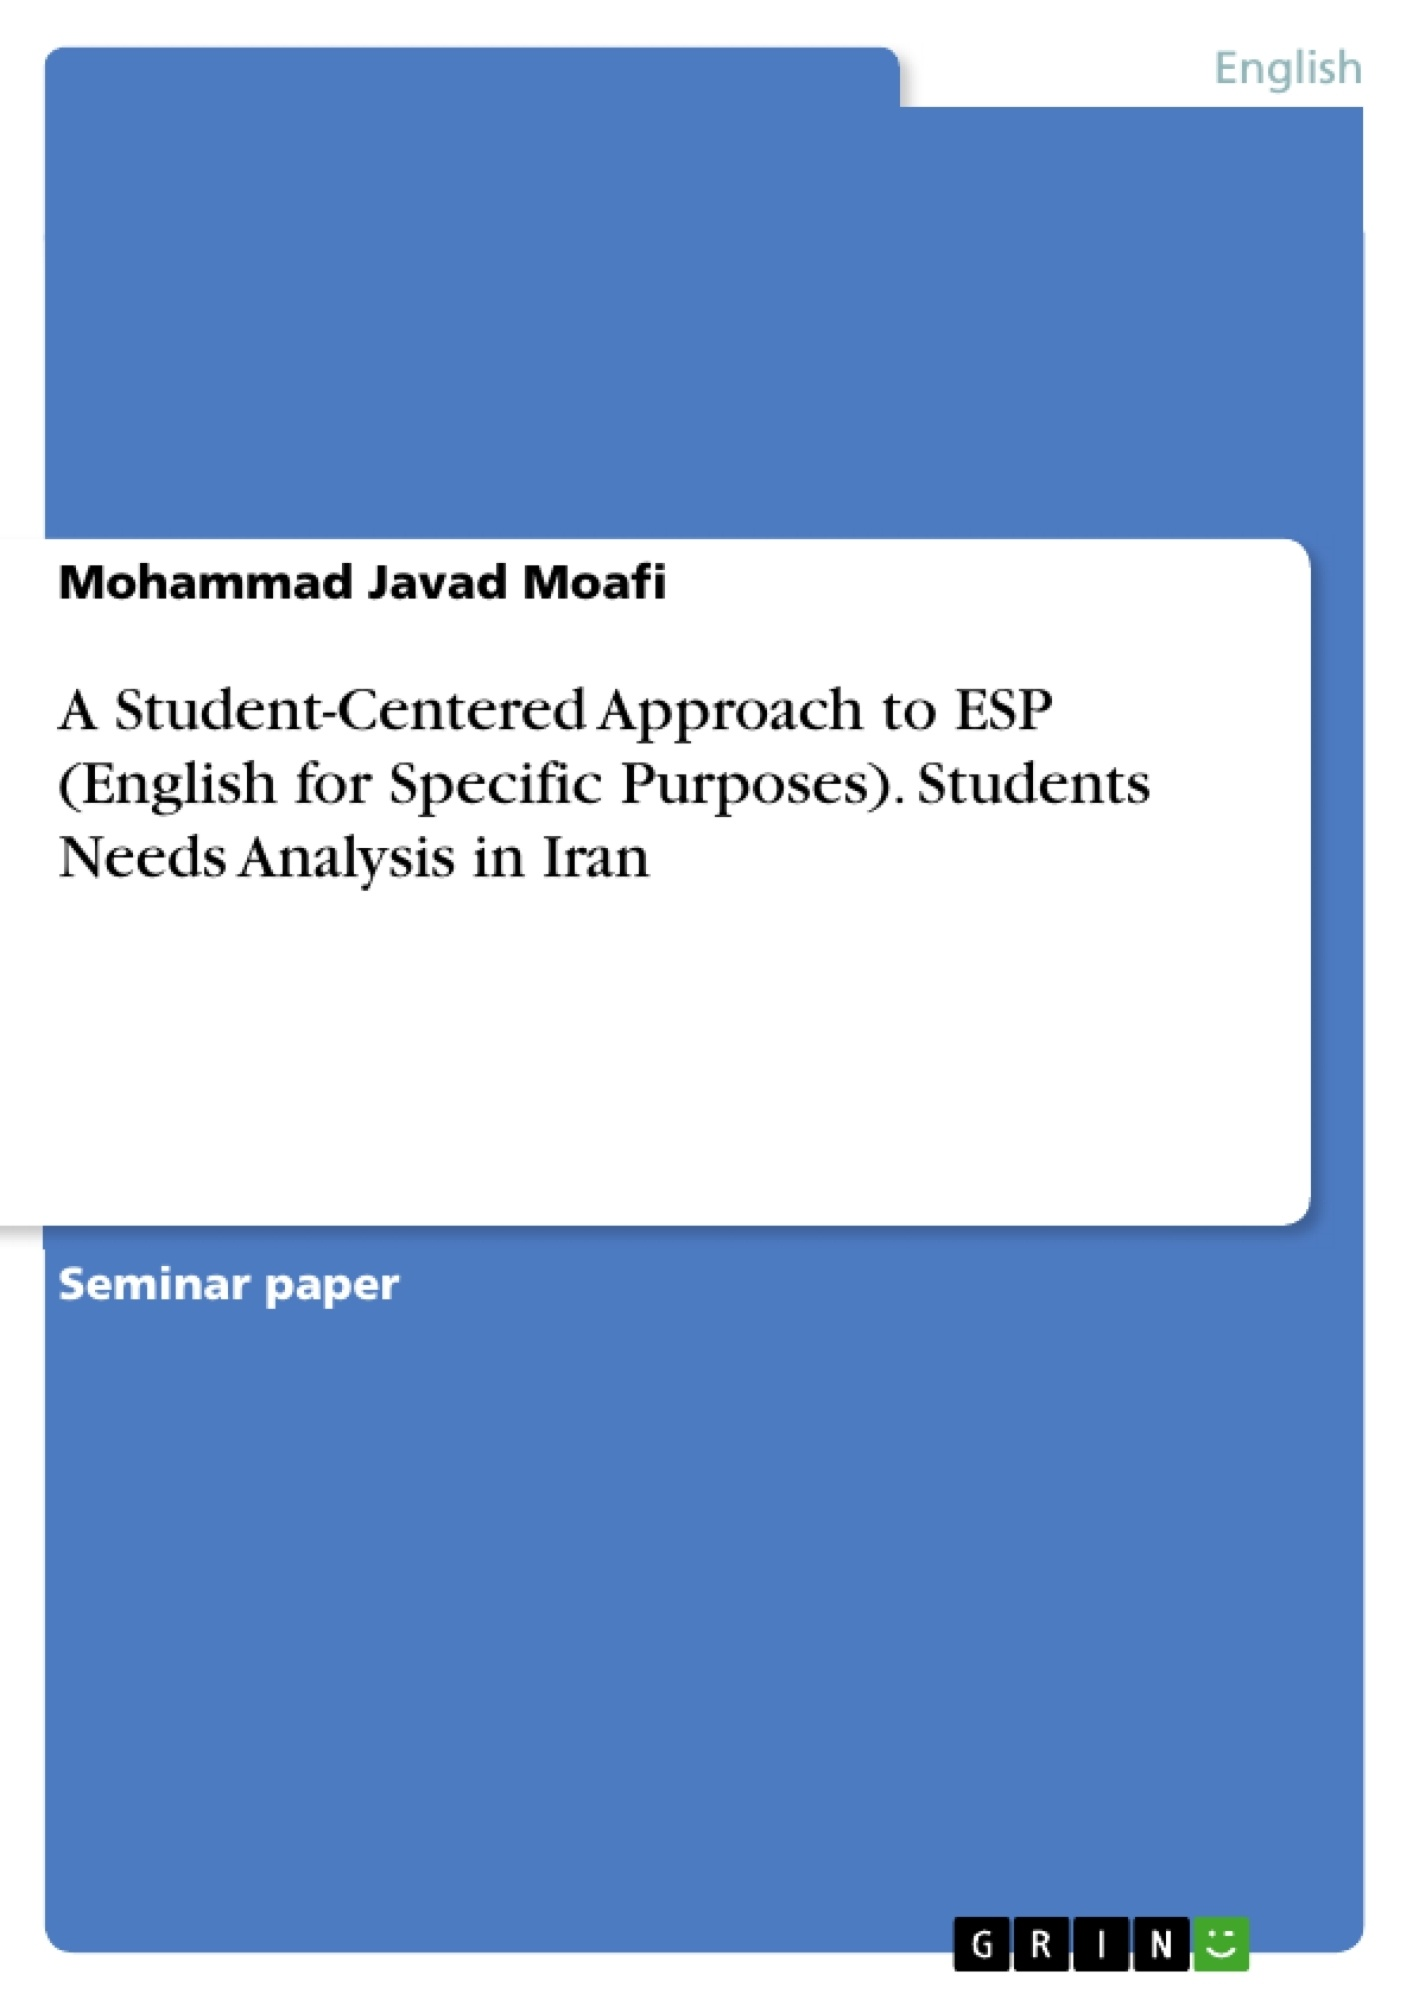 Title: A Student-Centered Approach to ESP (English for Specific Purposes). Students Needs Analysis in Iran